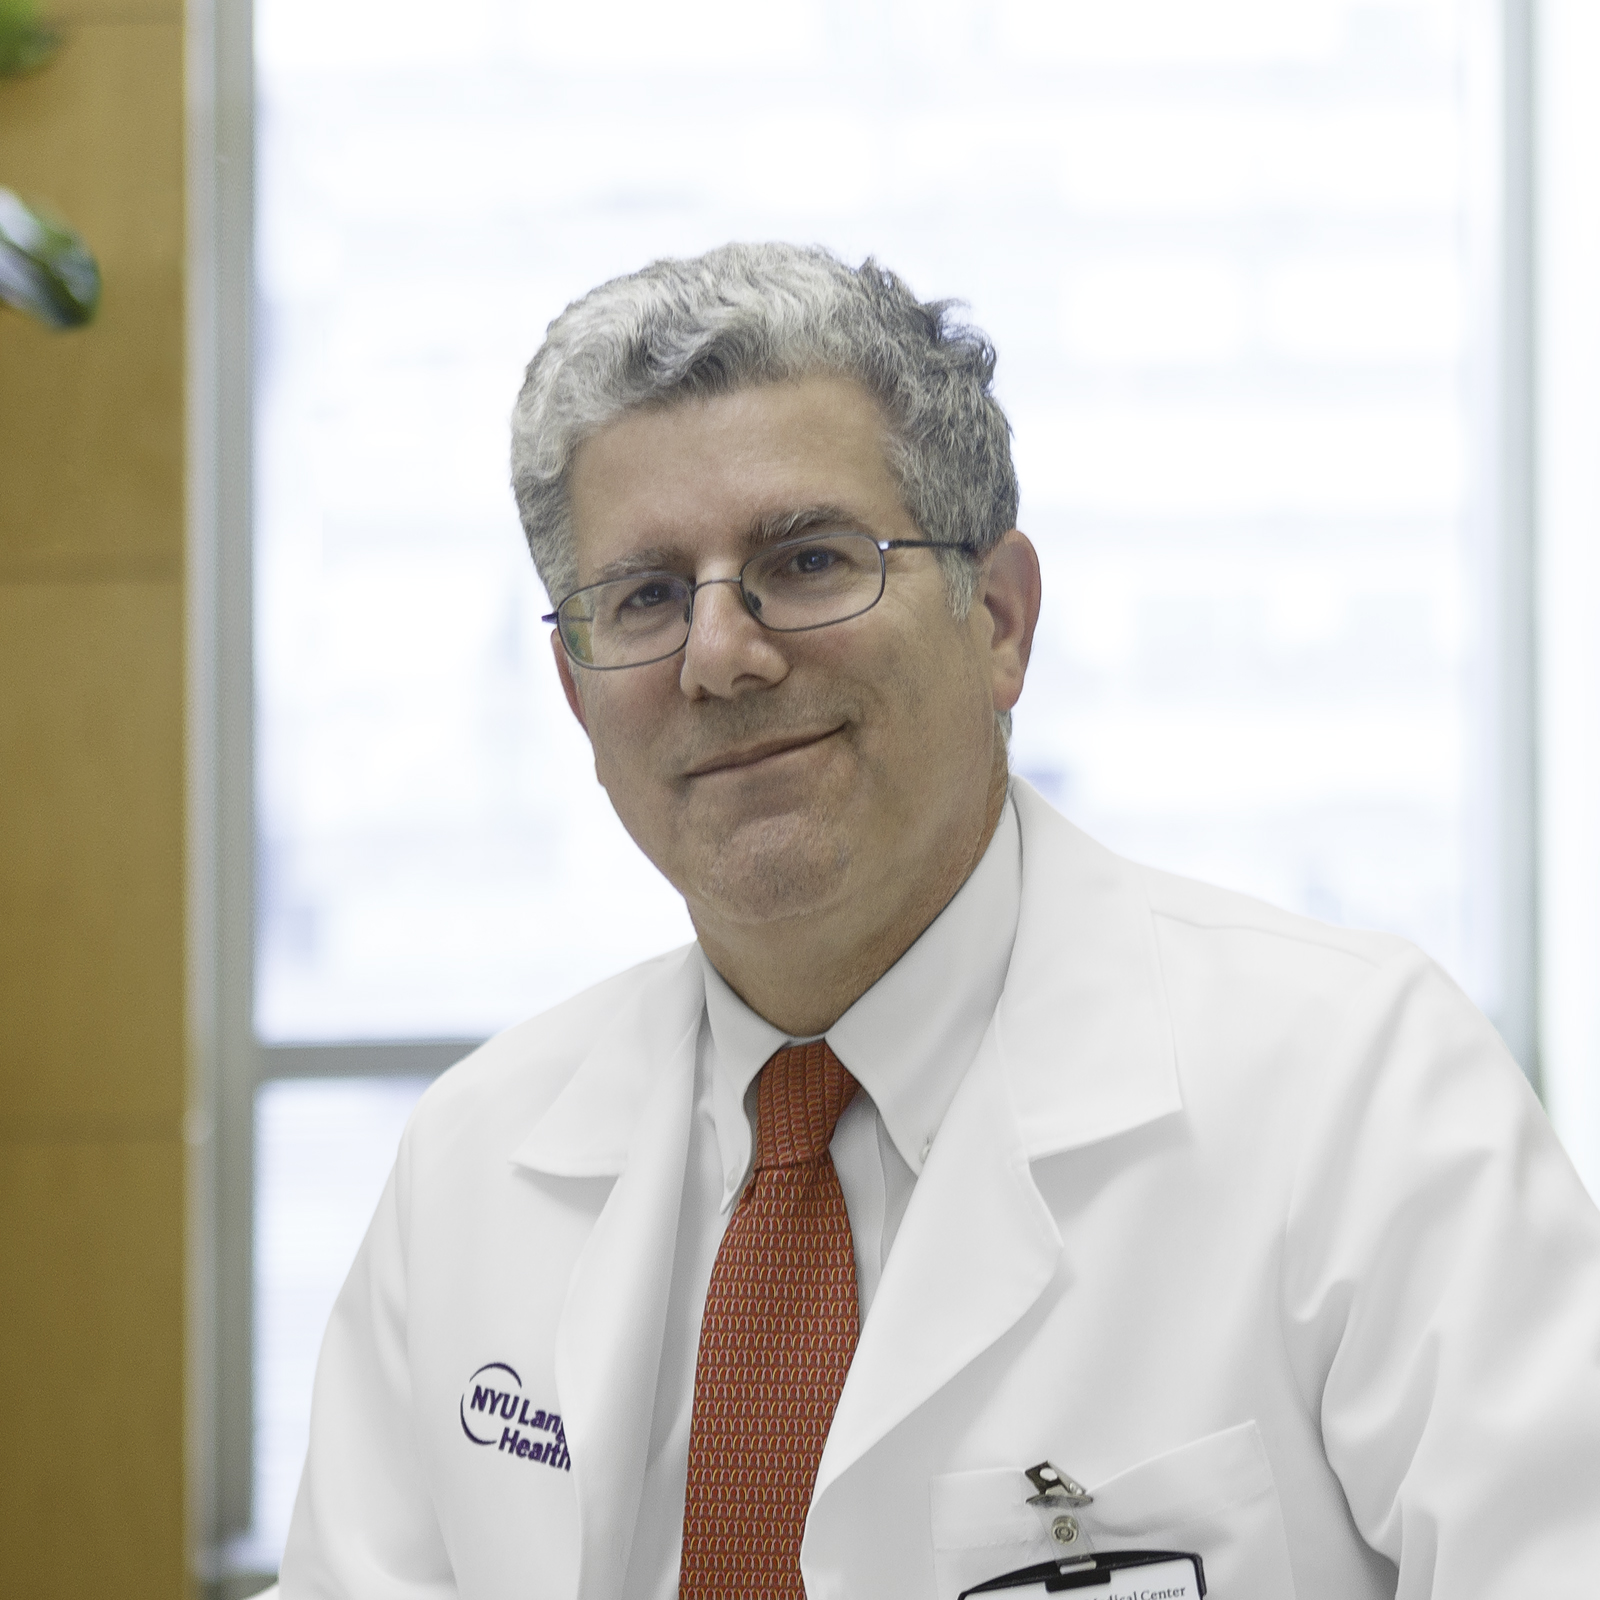 Oncologist Dr. Michael Grossbard